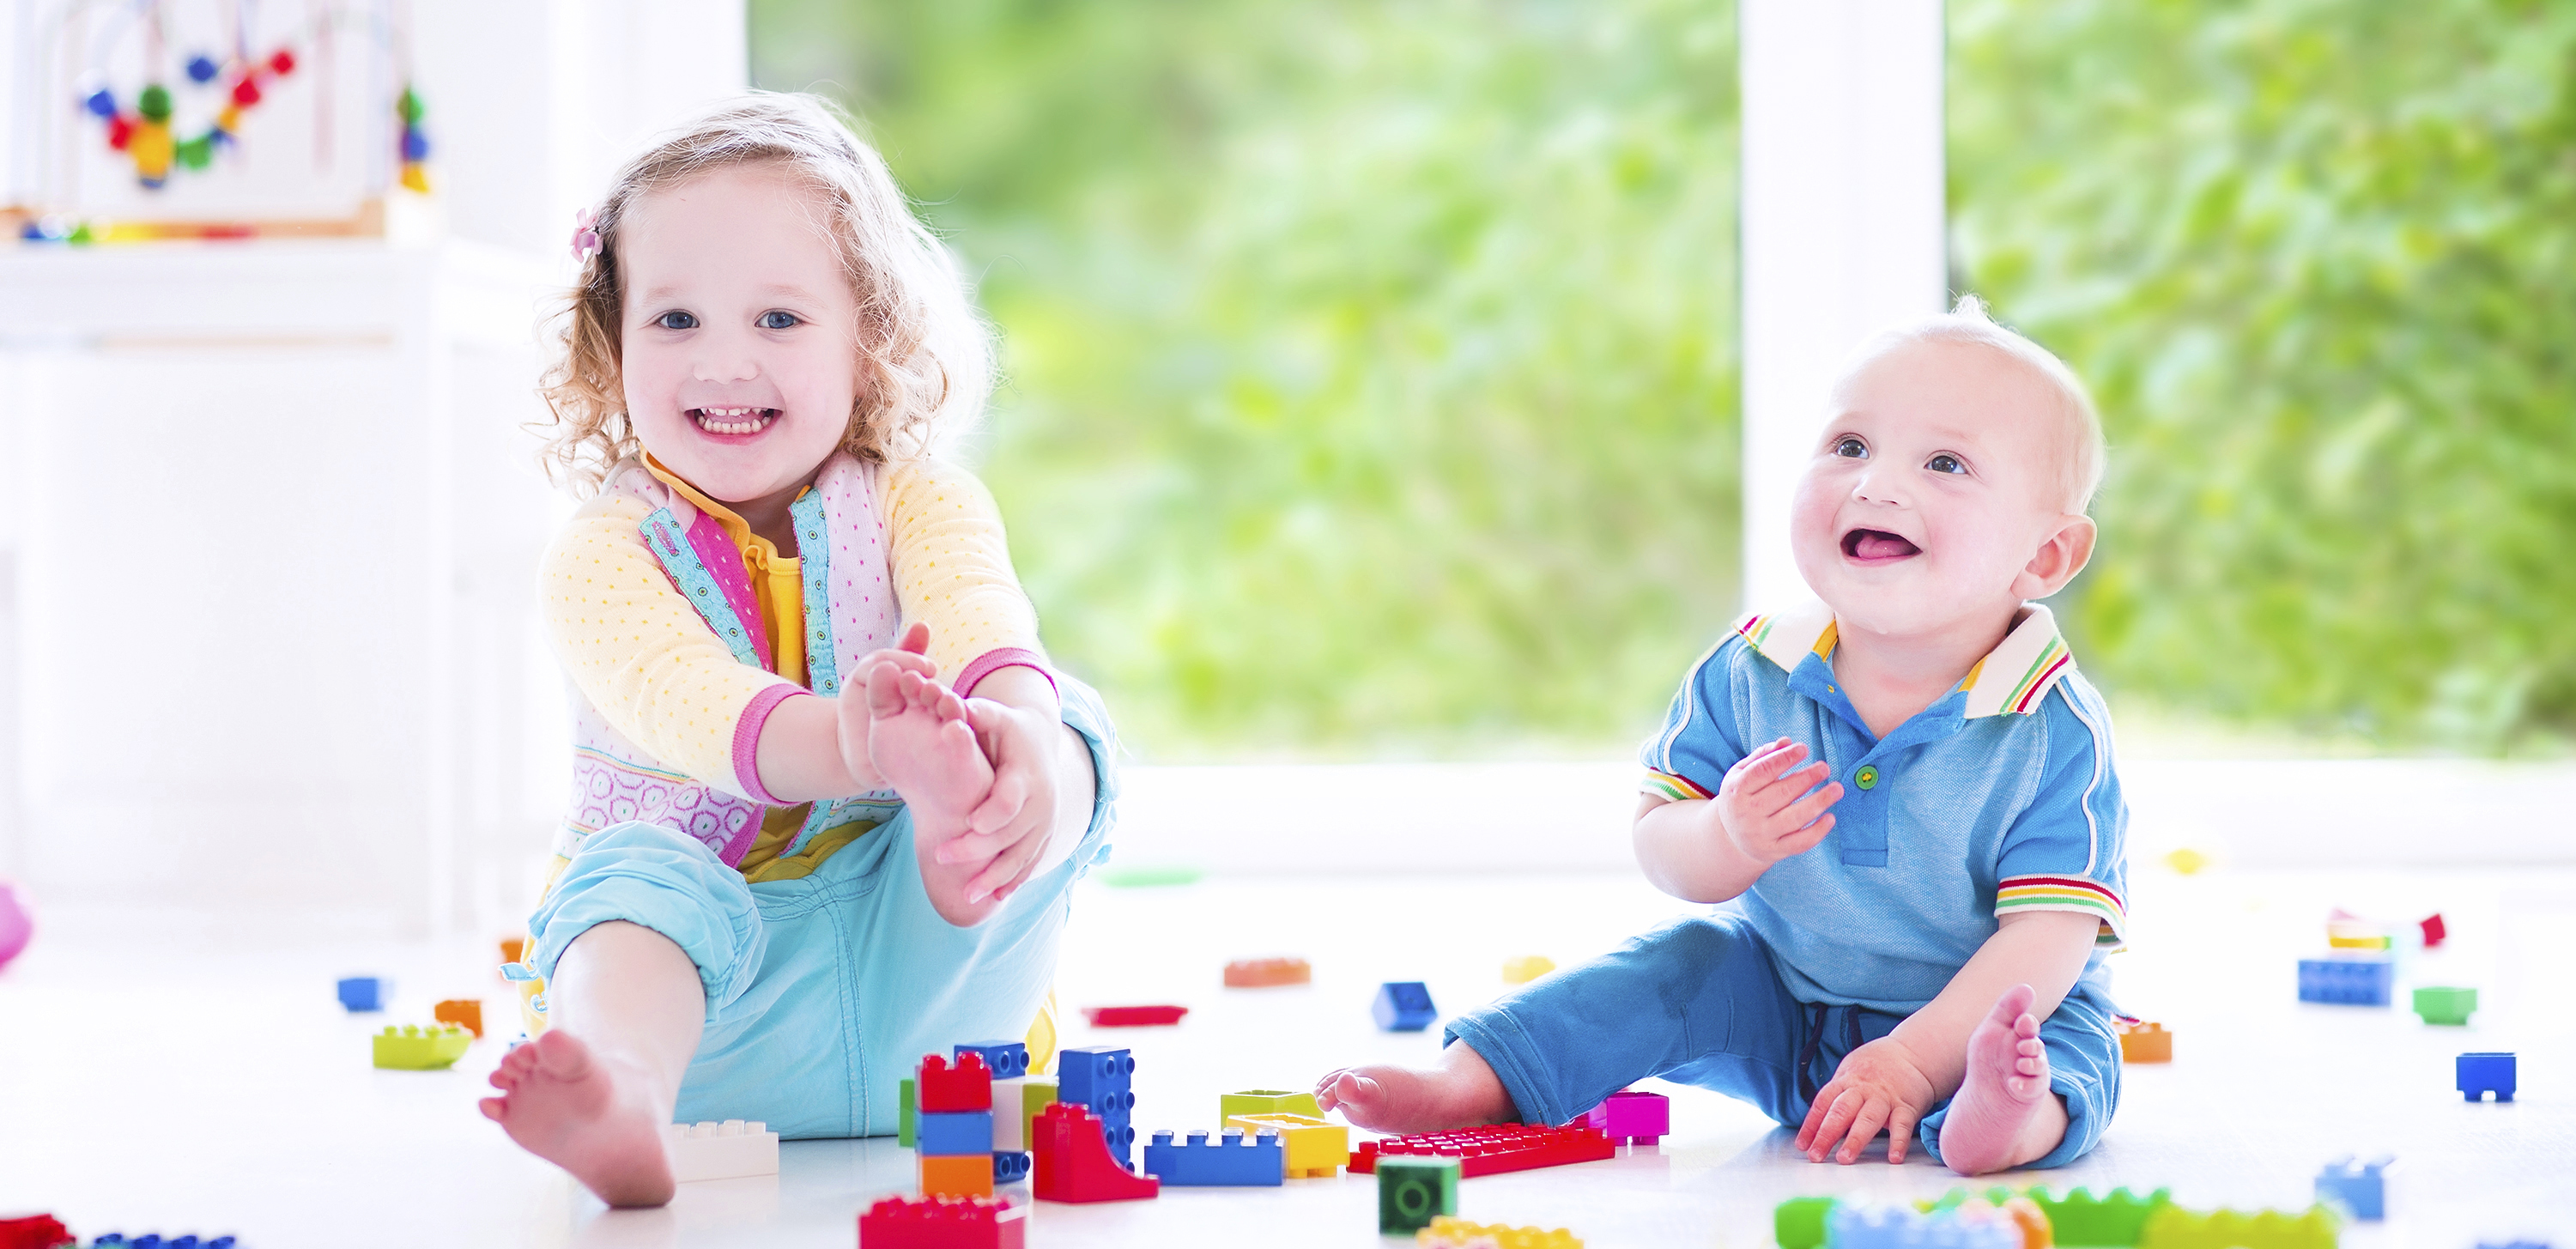 Adorable laughing toddler girl and a funny little baby boy playing with colorful blocks sitting on a floor in a sunny bedroom with a big window